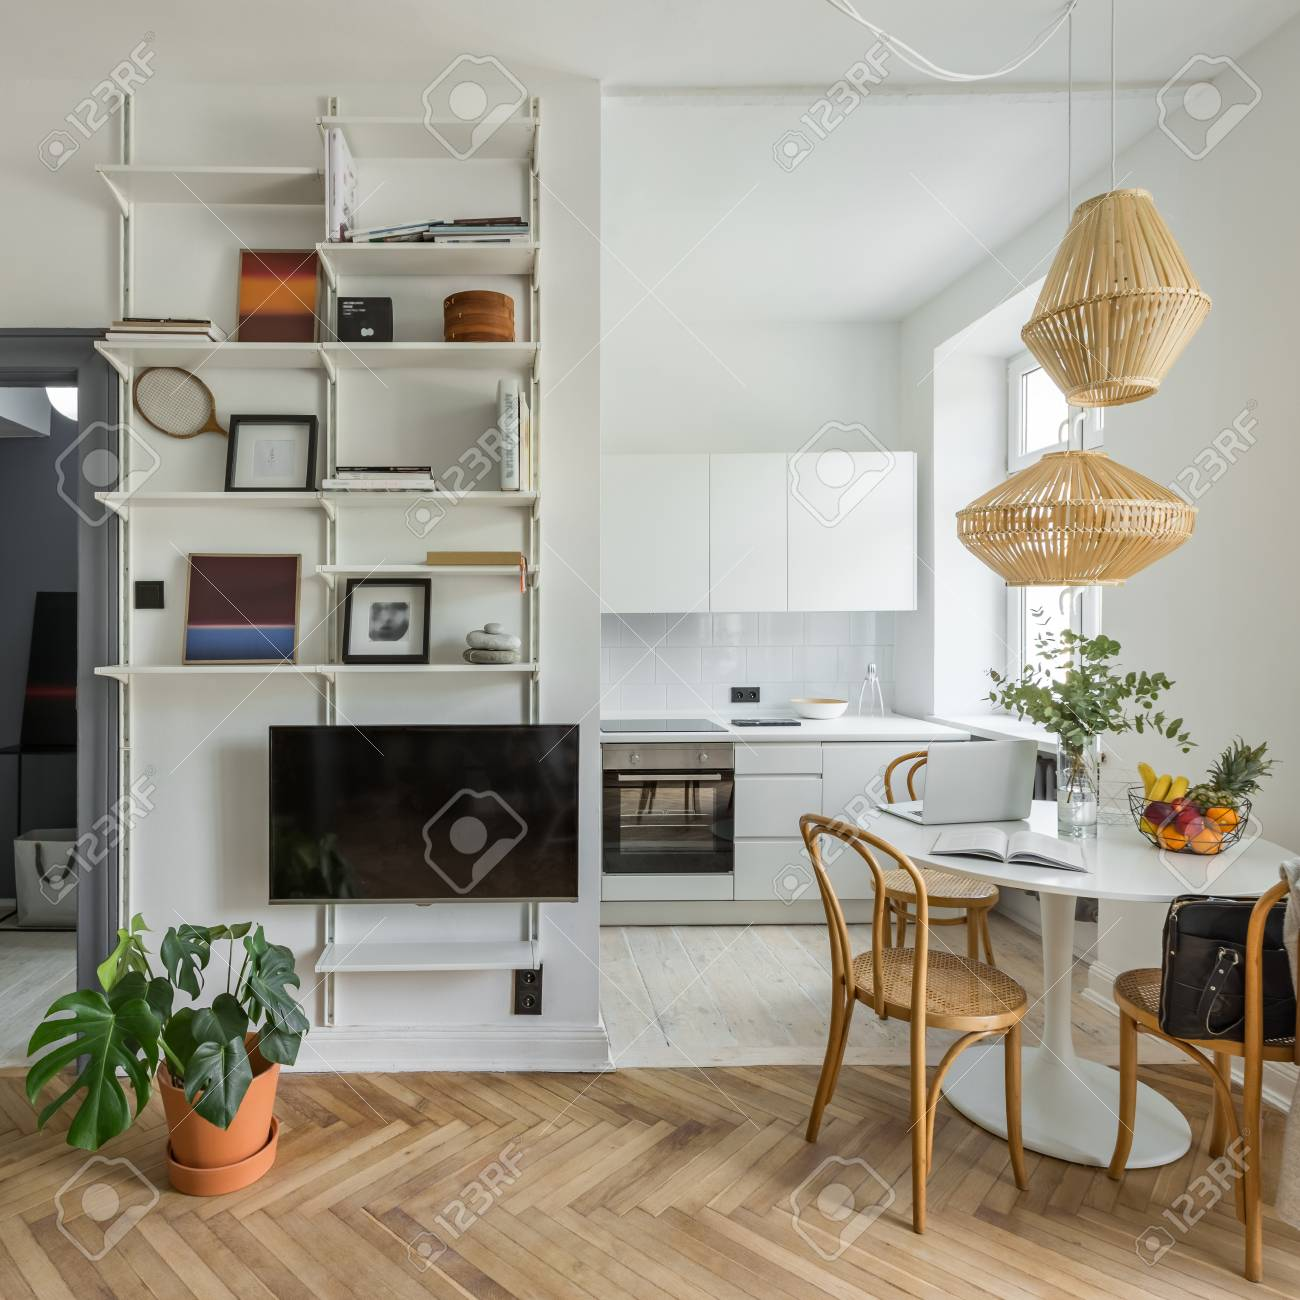 Cozy Apartment In Scandinavian Style With Open Kitchen Stock Photo Picture And Royalty Free Image Image 103268223